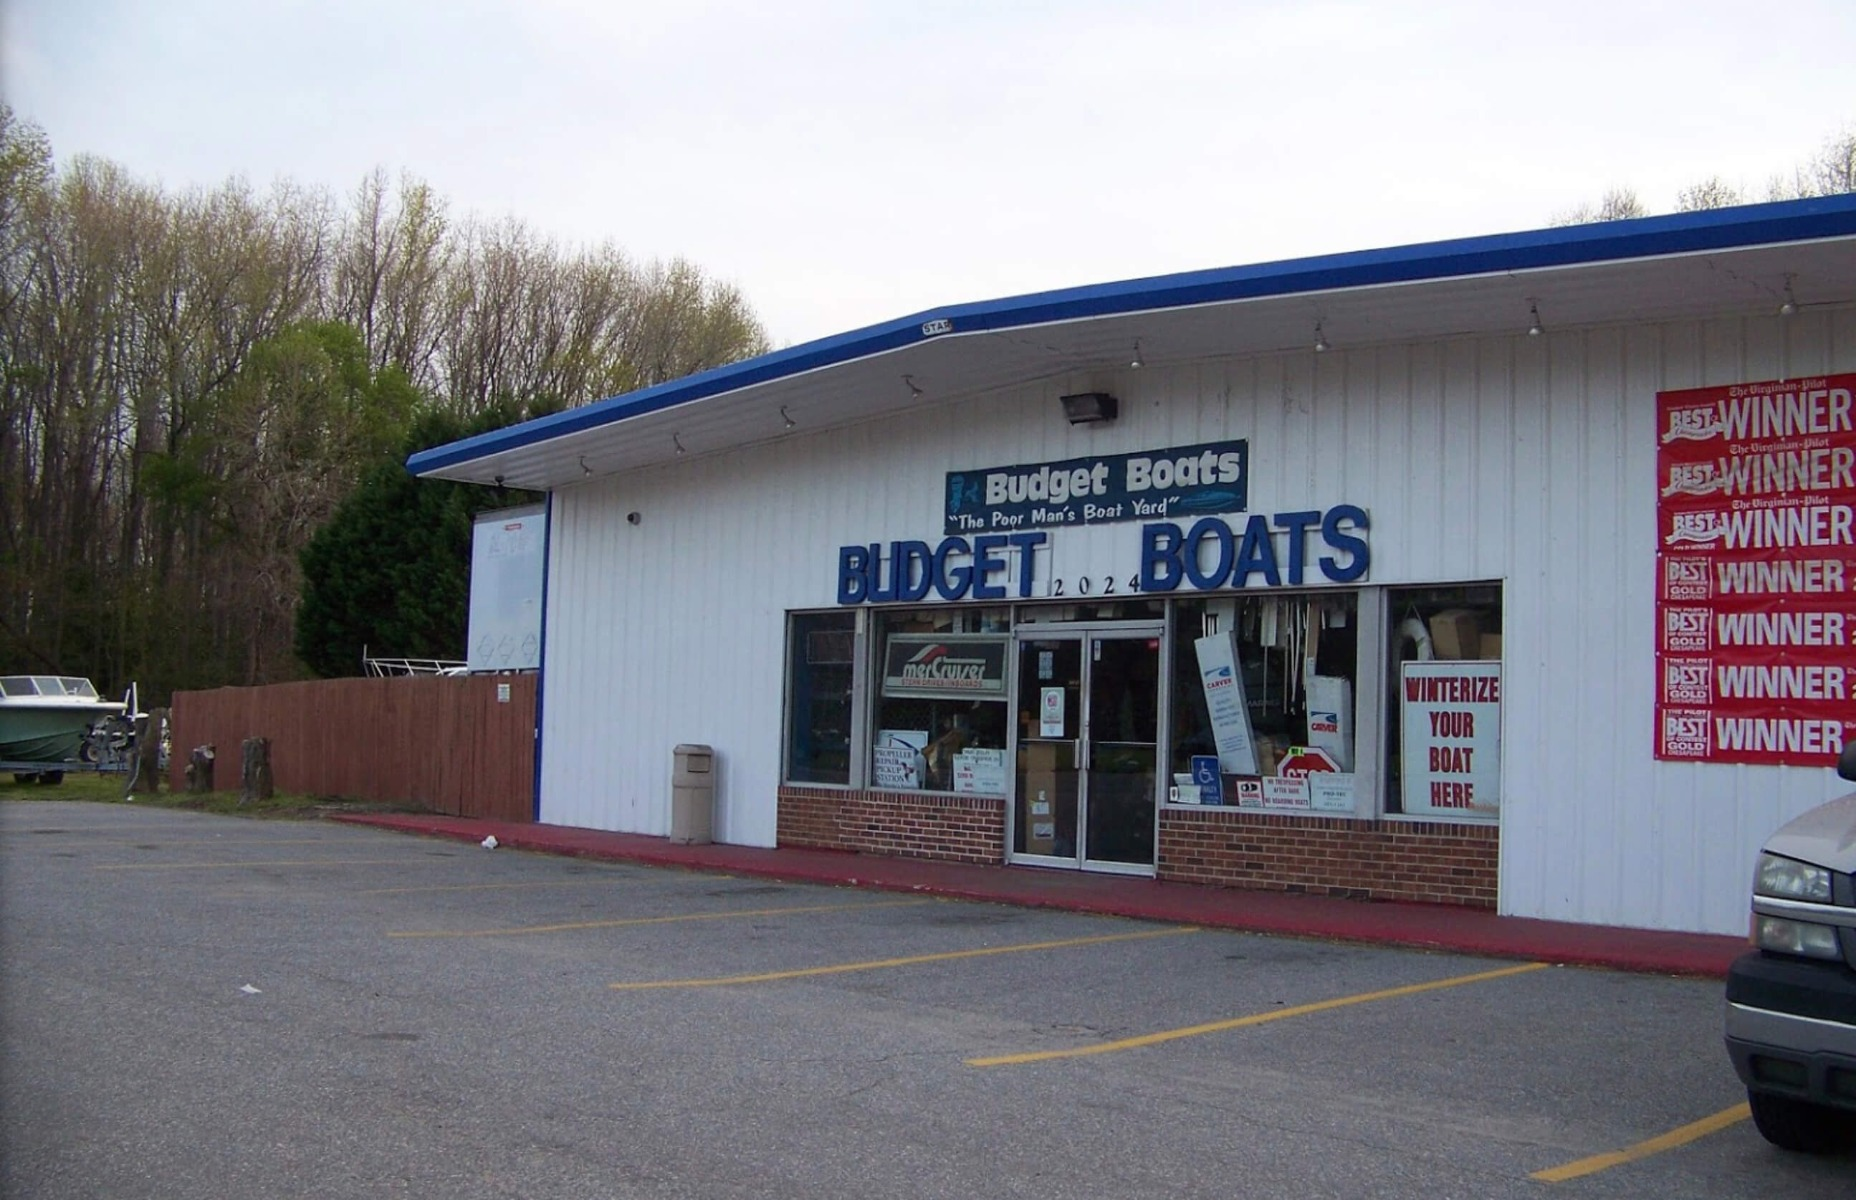 Budget Boats Front Building